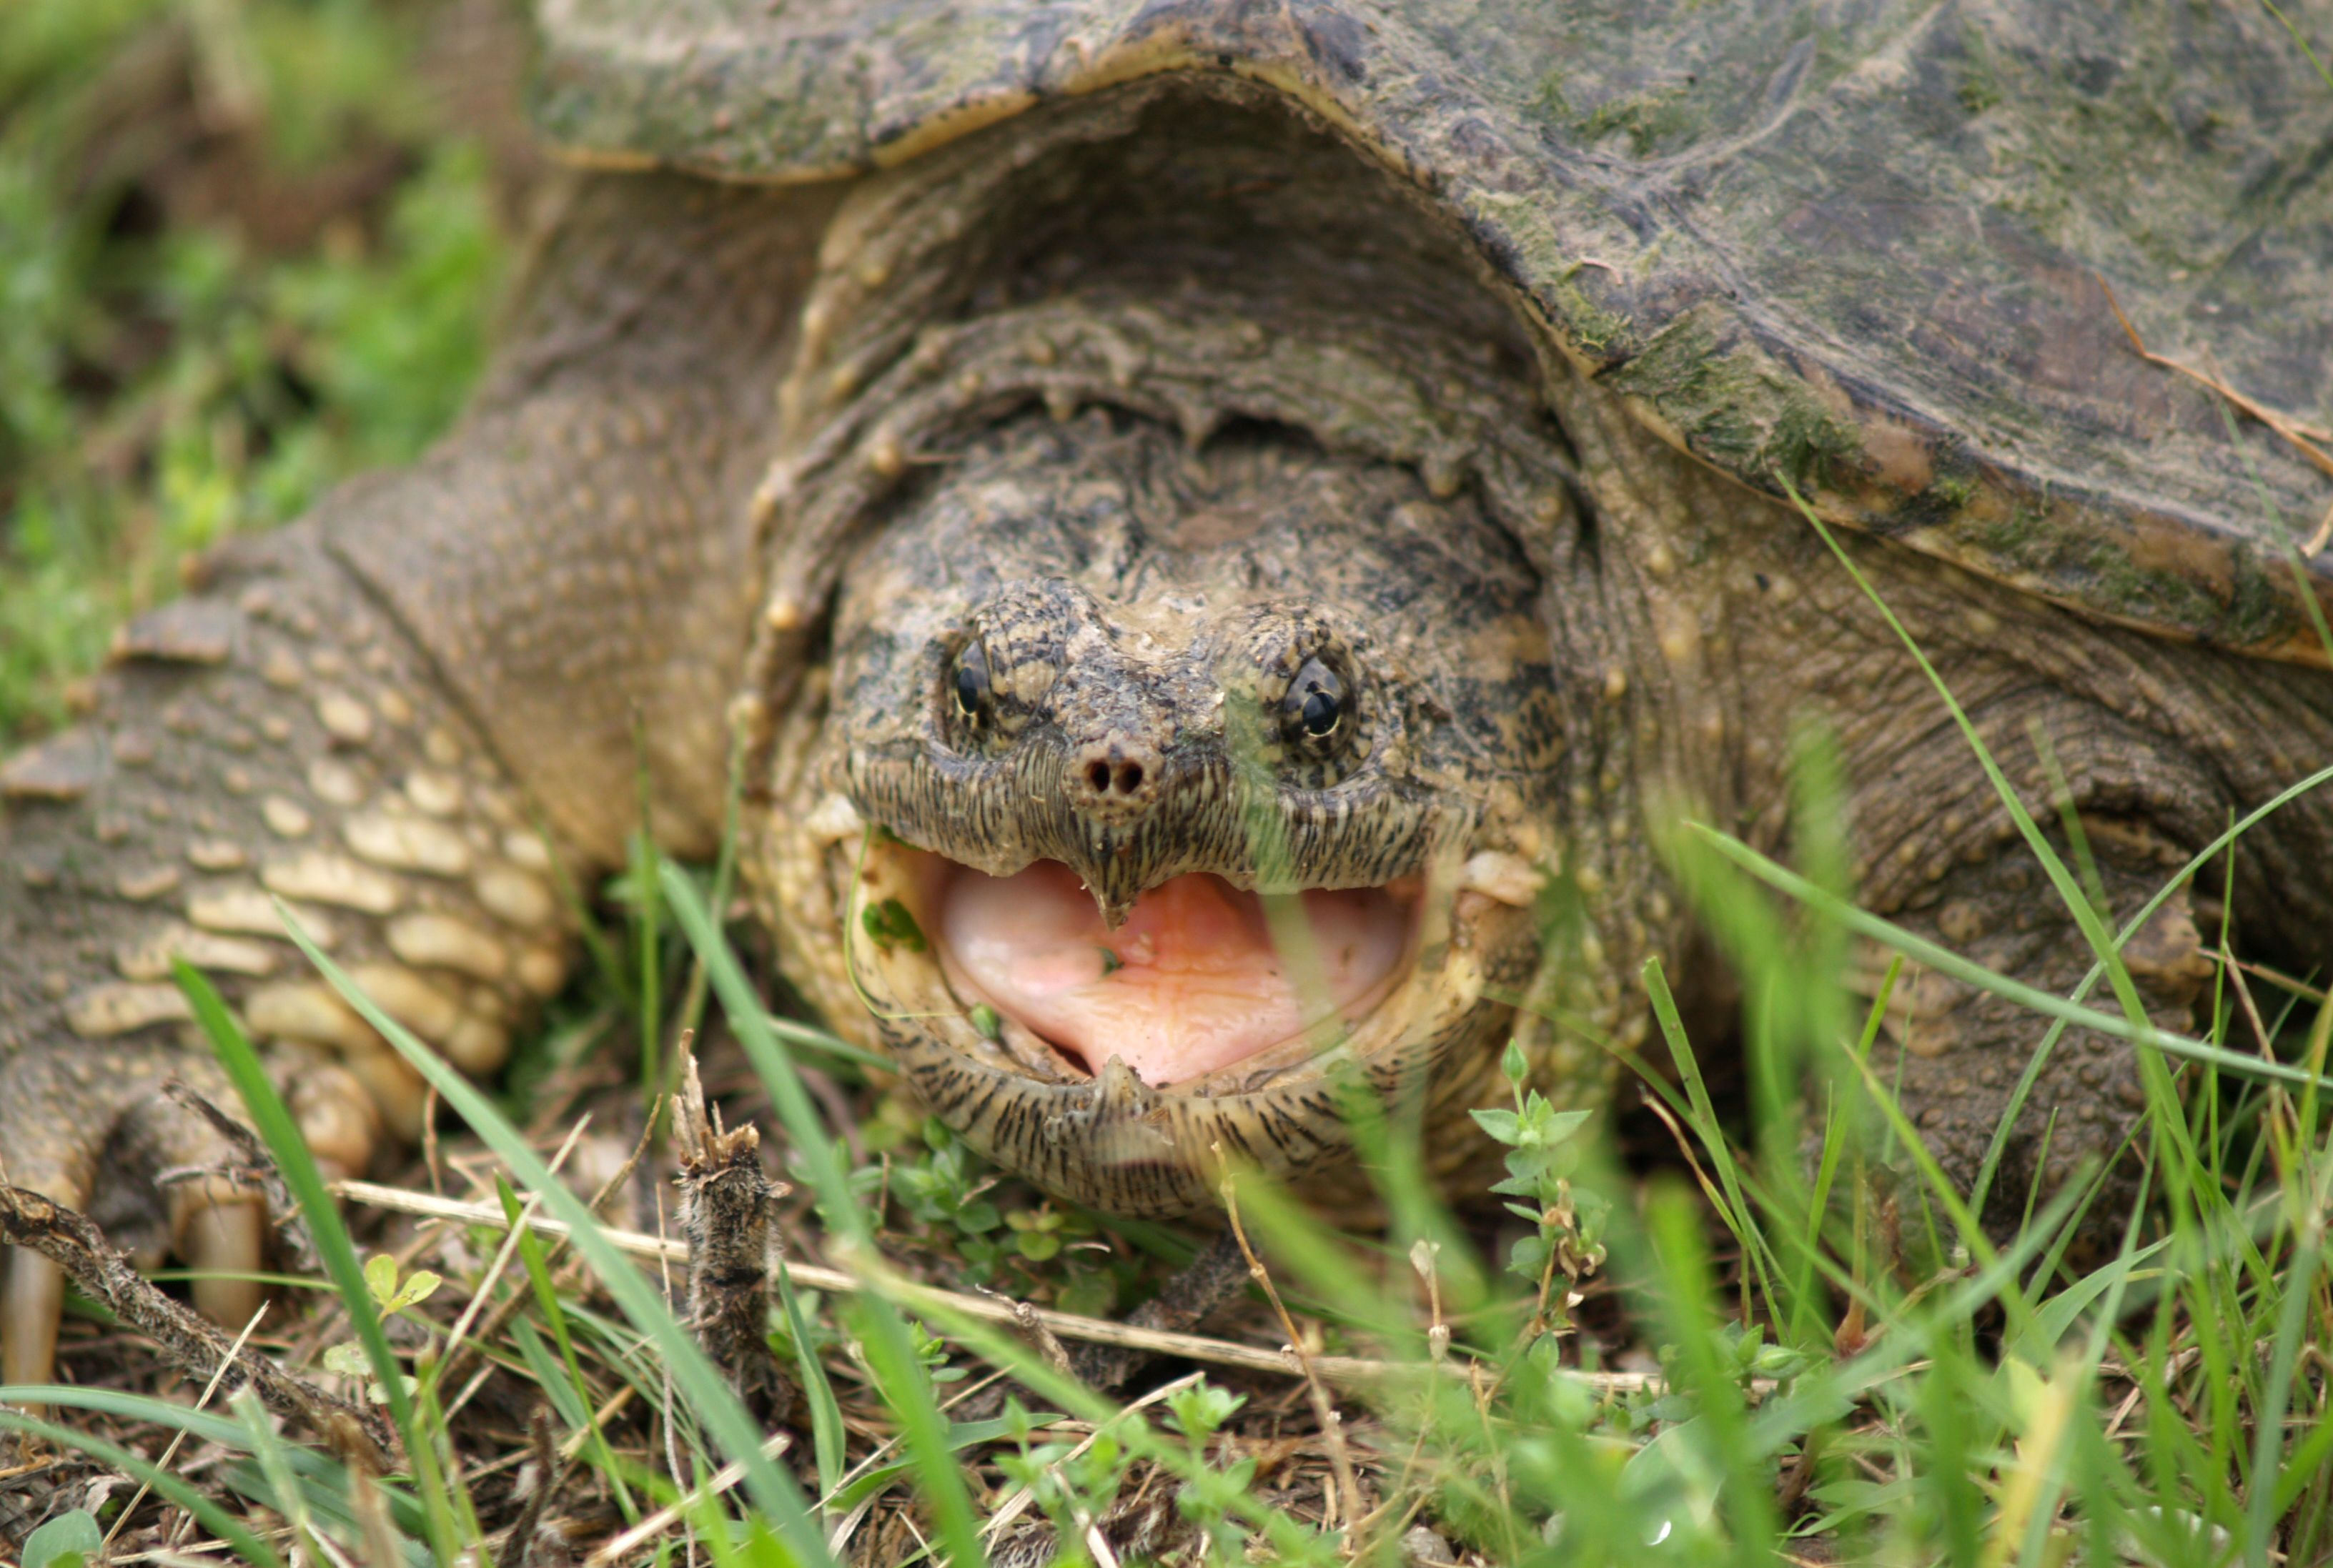 10 Biting Facts About Snapping Turtles | Mental Floss